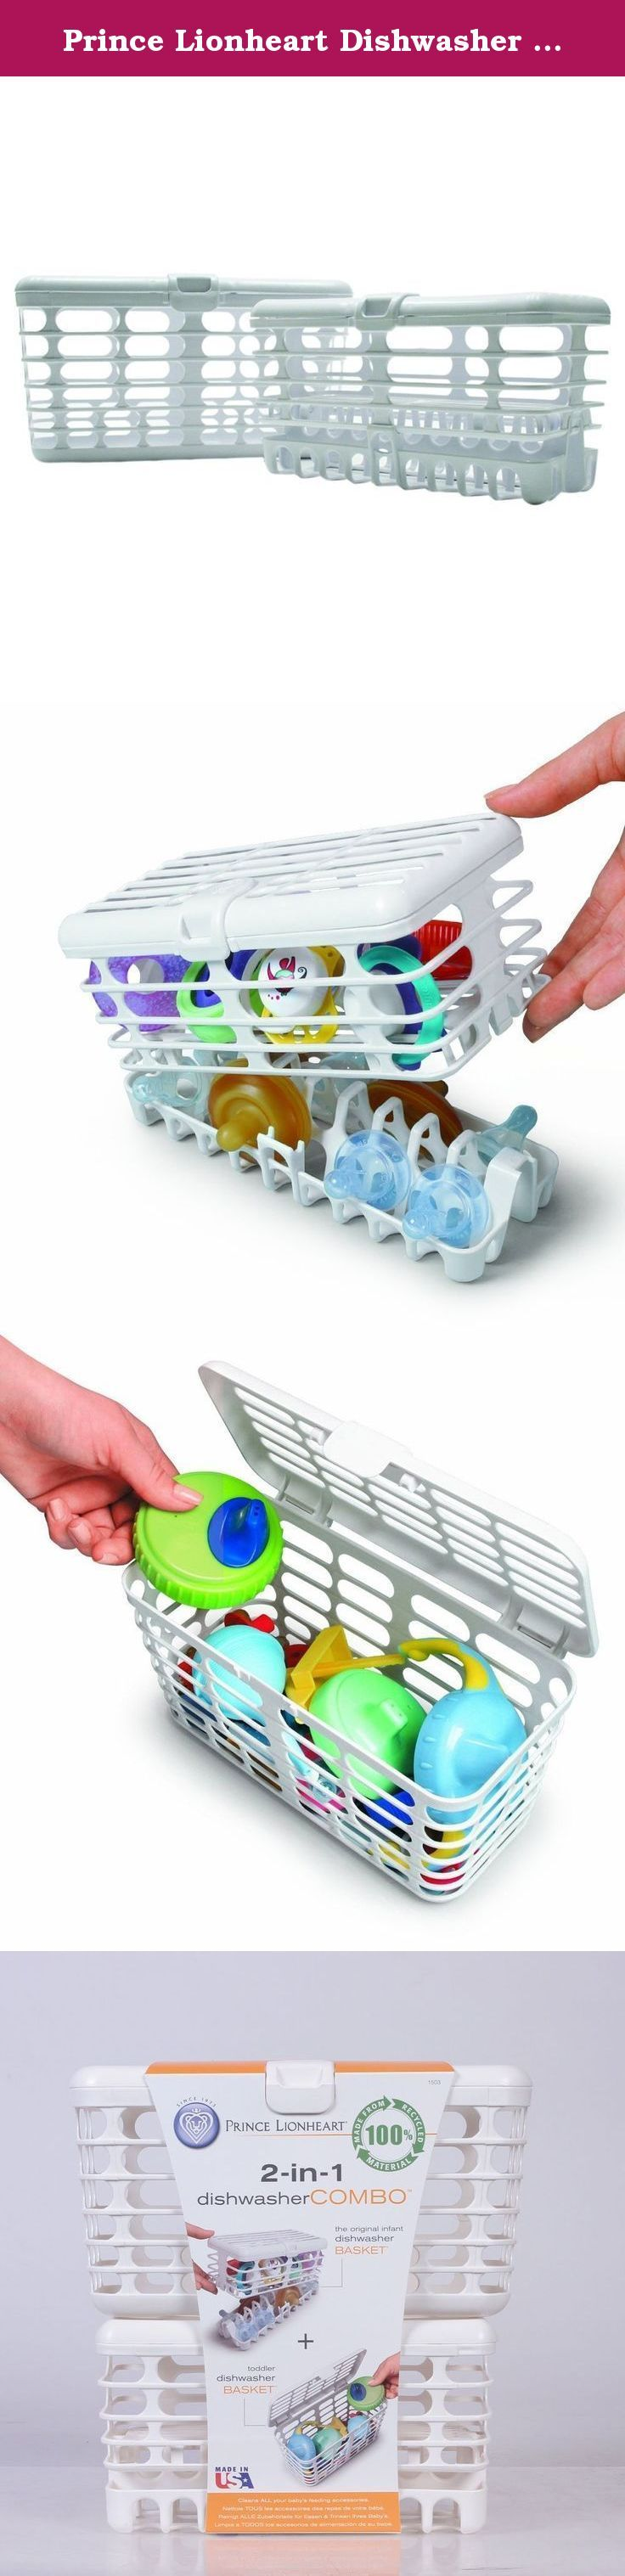 Prince Lionheart Dishwasher Basket Combo. Prince Lionheart Dishwasher Basket Combo at Kohl's - This Prince Lionheart Dishwasher Basket Combo thoroughly cleans pacifiers, nipples and other small baby feeding accessories in your dishwasher. Shop our full line of baby accessories at Kohls.com.